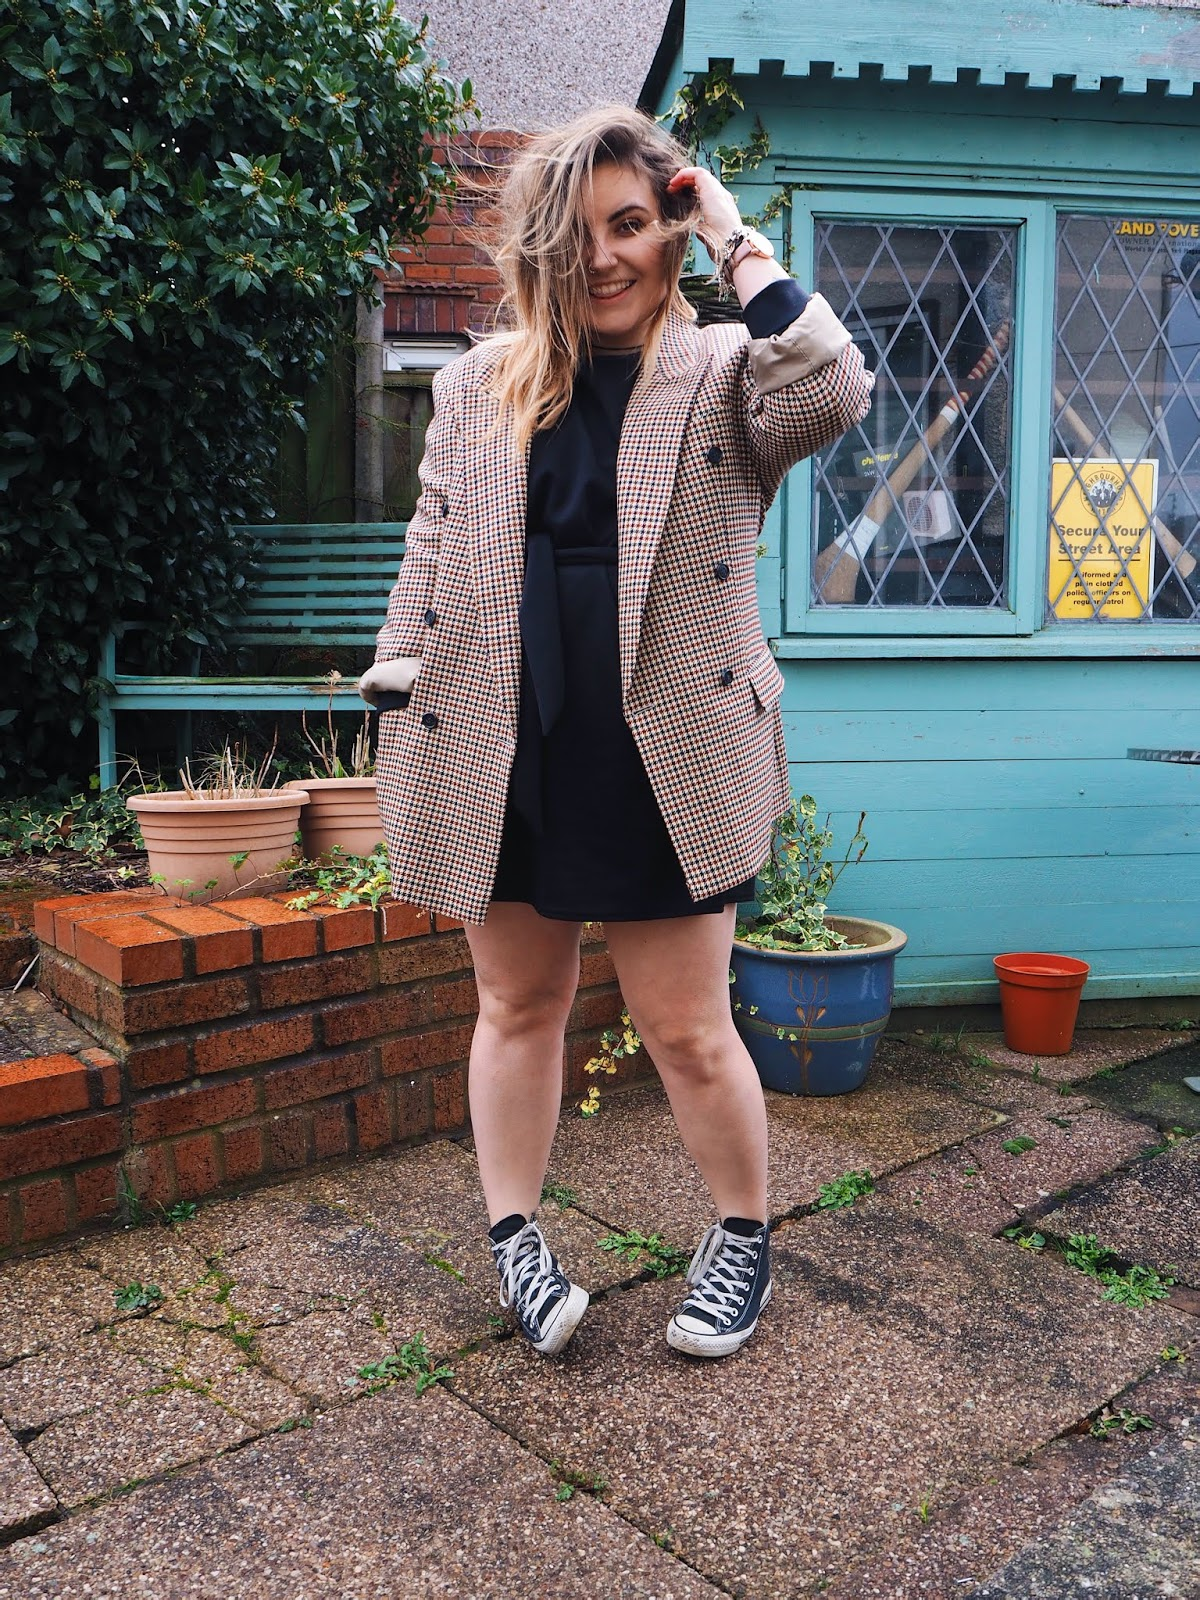 See The Stars - how I've grown confident when blogging